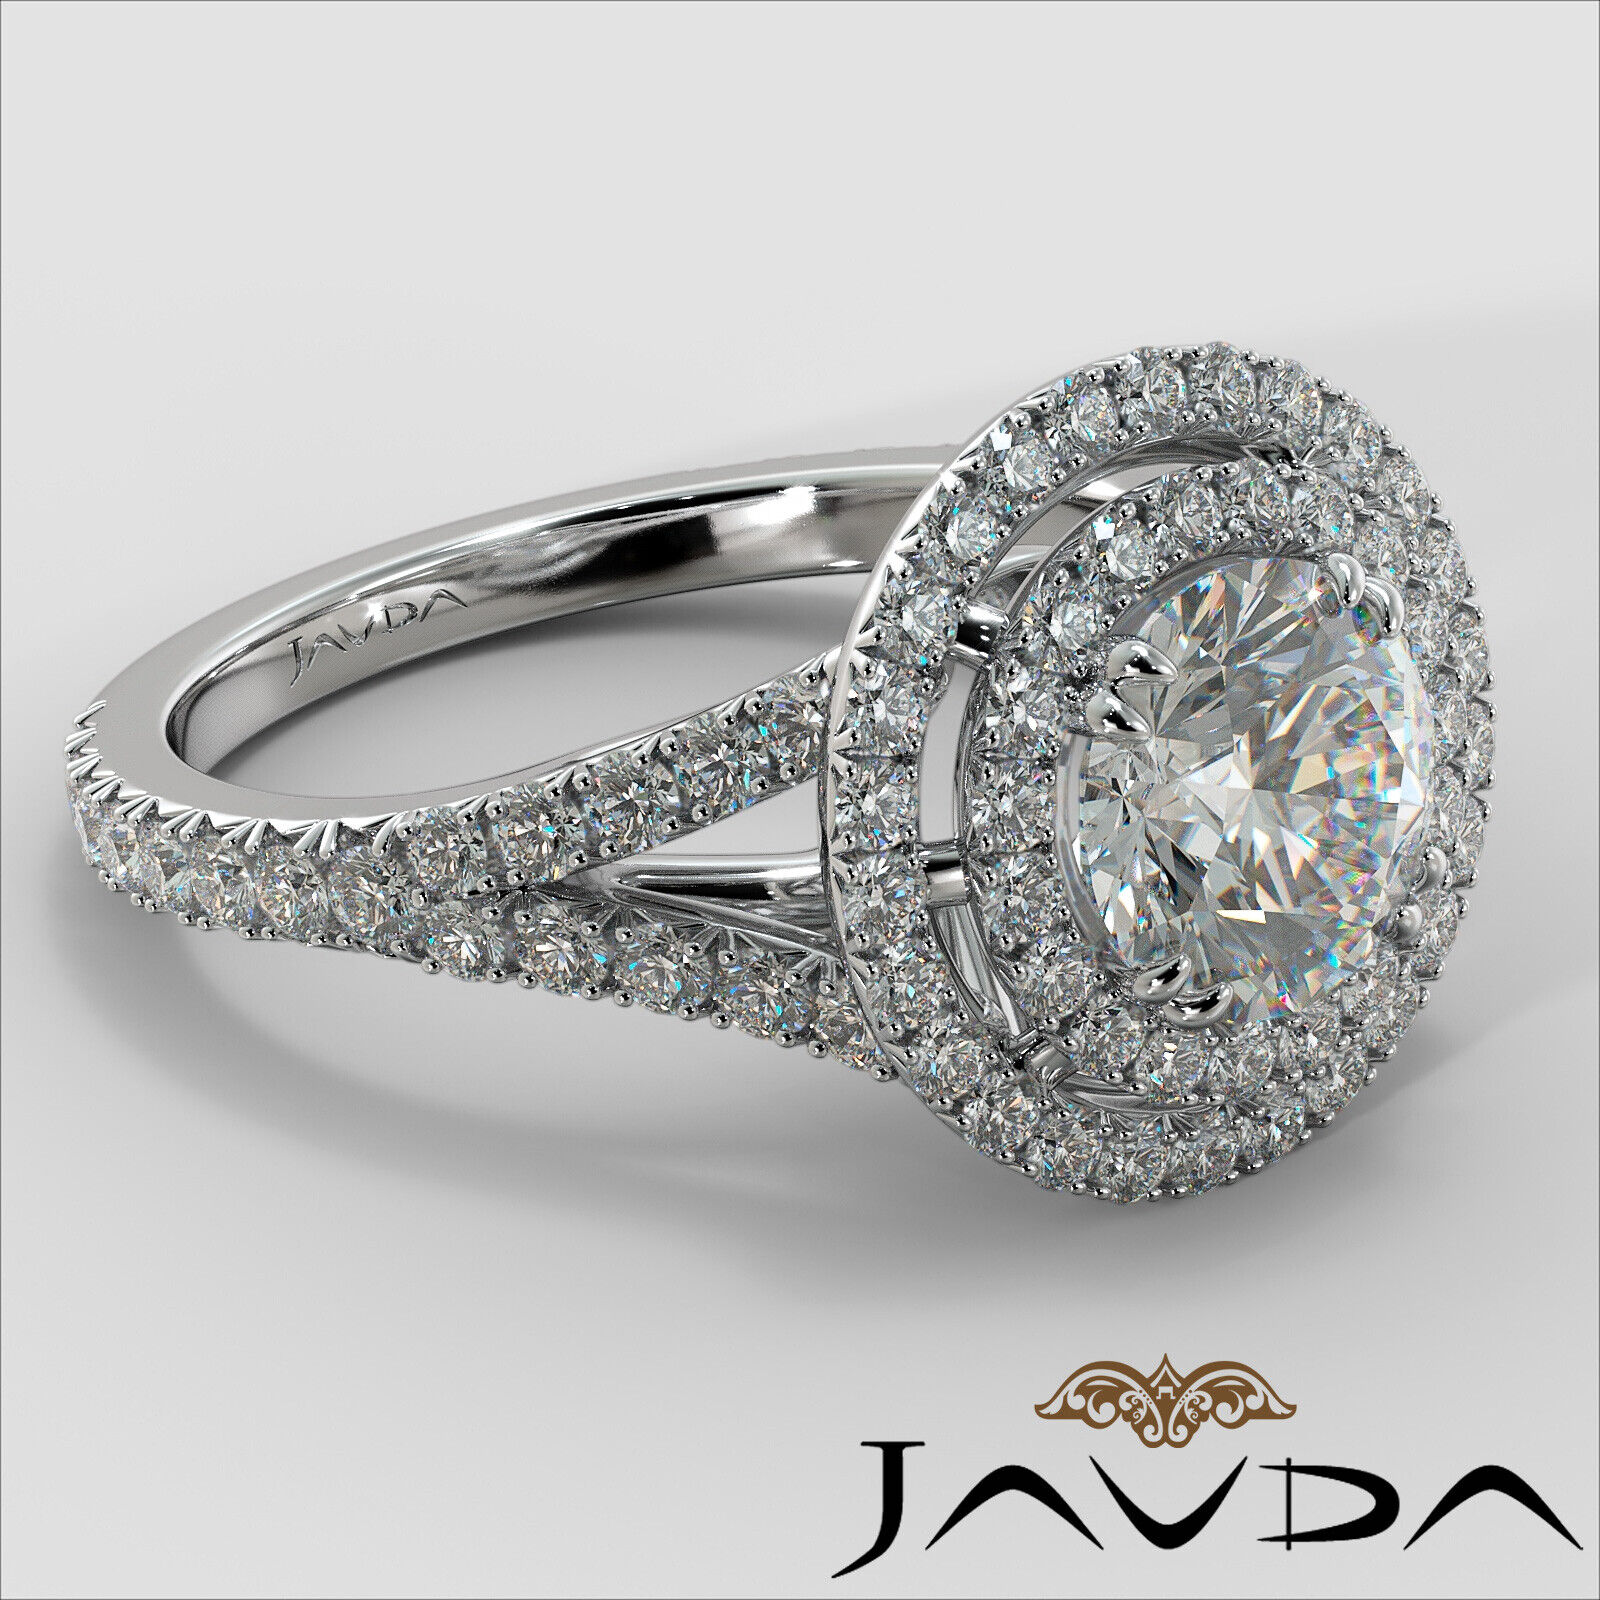 2.05ct French Pave Gala Halo Round Diamond Engagement Ring GIA F-VVS1 White Gold 2